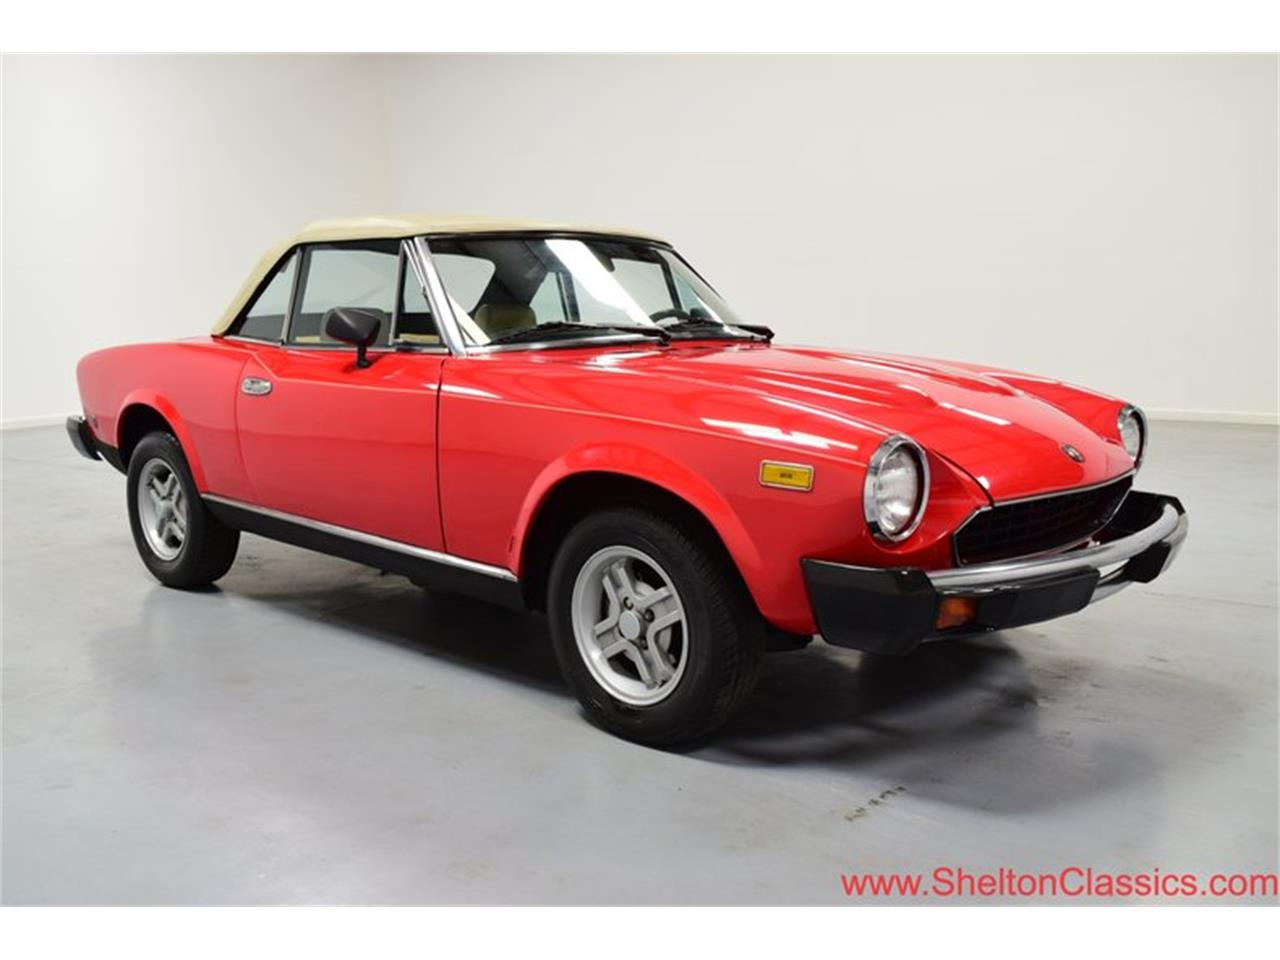 1980 Fiat Spider for sale in Mooresville, NC – photo 2